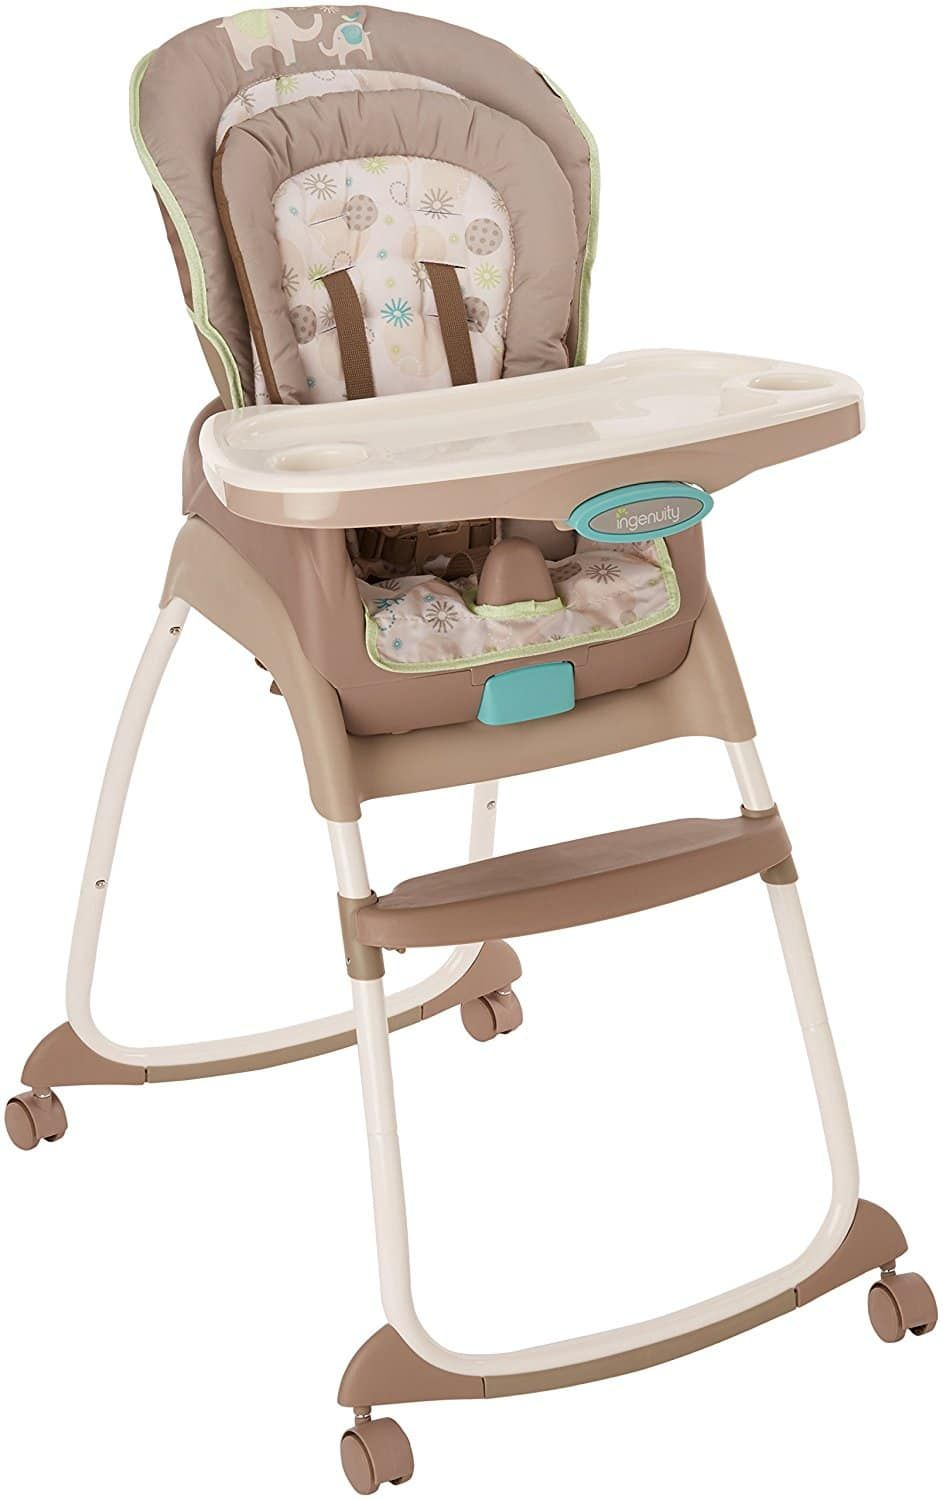 Top 10 Best Baby High Chairs In 2020 Hqreview Best High Chairs